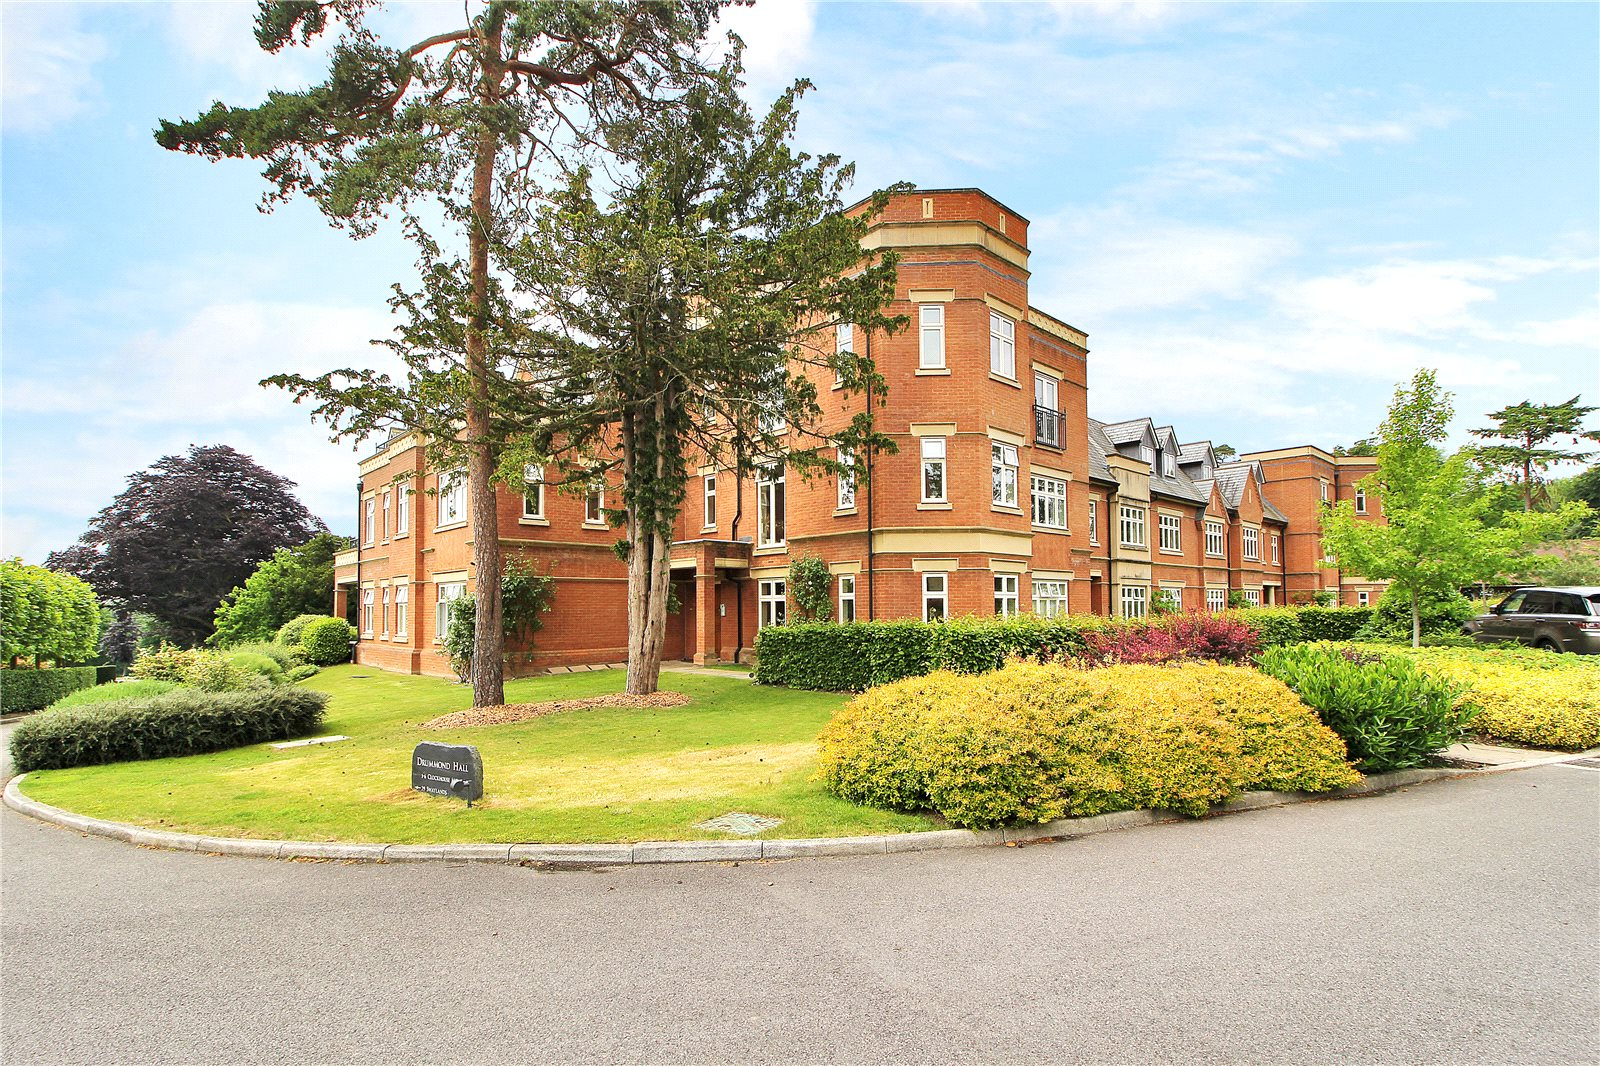 Apartamentos para Venda às Drummond Hall, Penshurst Road, Tonbridge, Kent, TN11 Tonbridge, Inglaterra